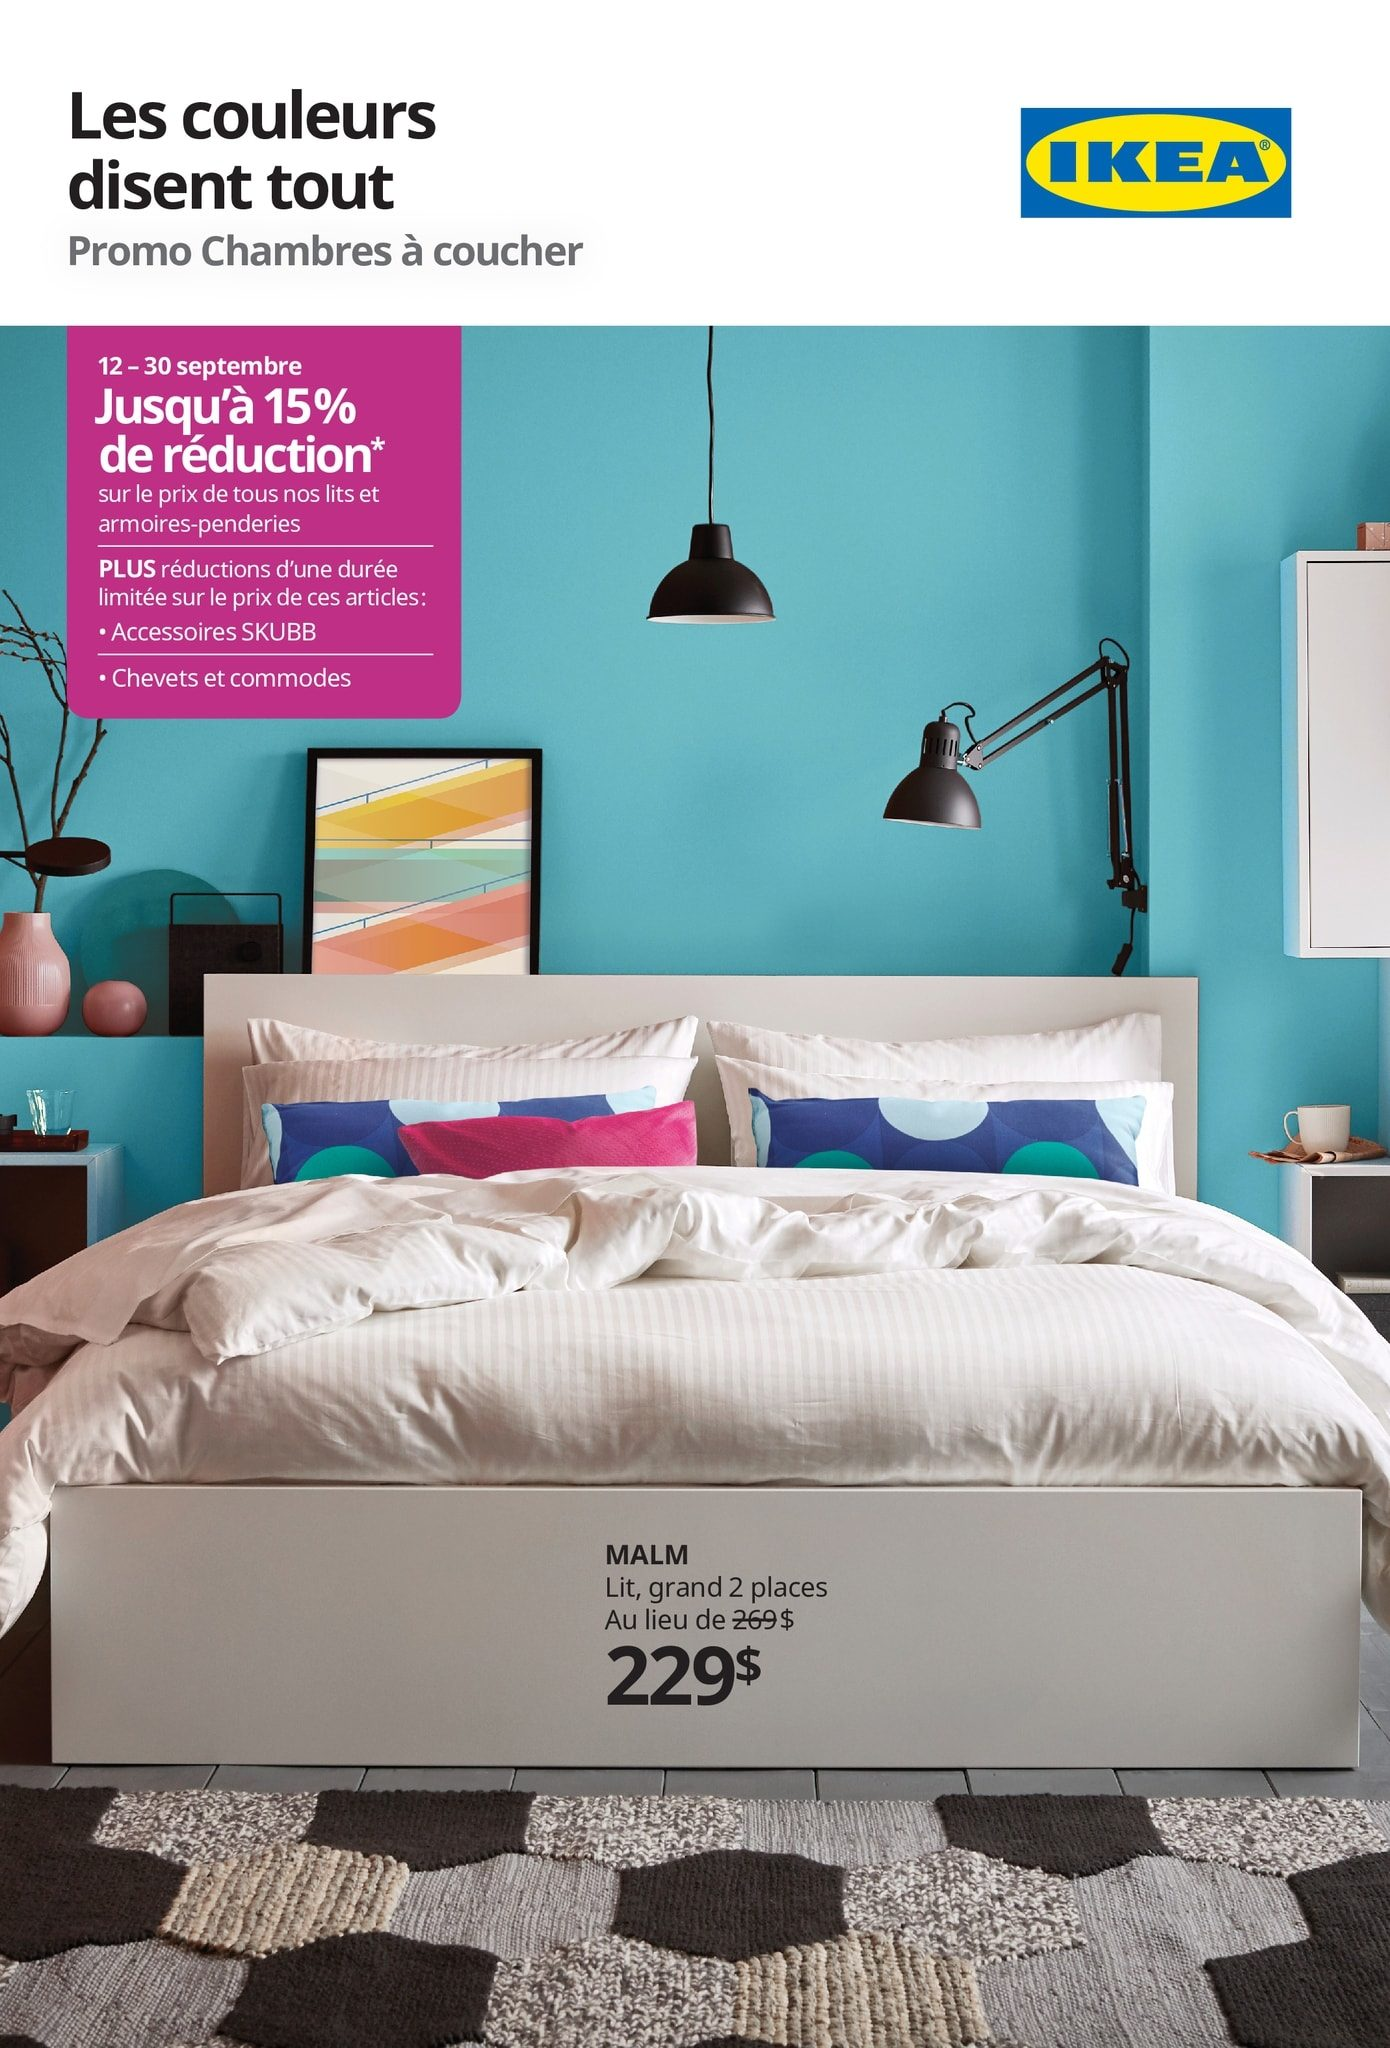 Ikea Weekly Flyer Promo Chambres à Coucher Sep 12 30